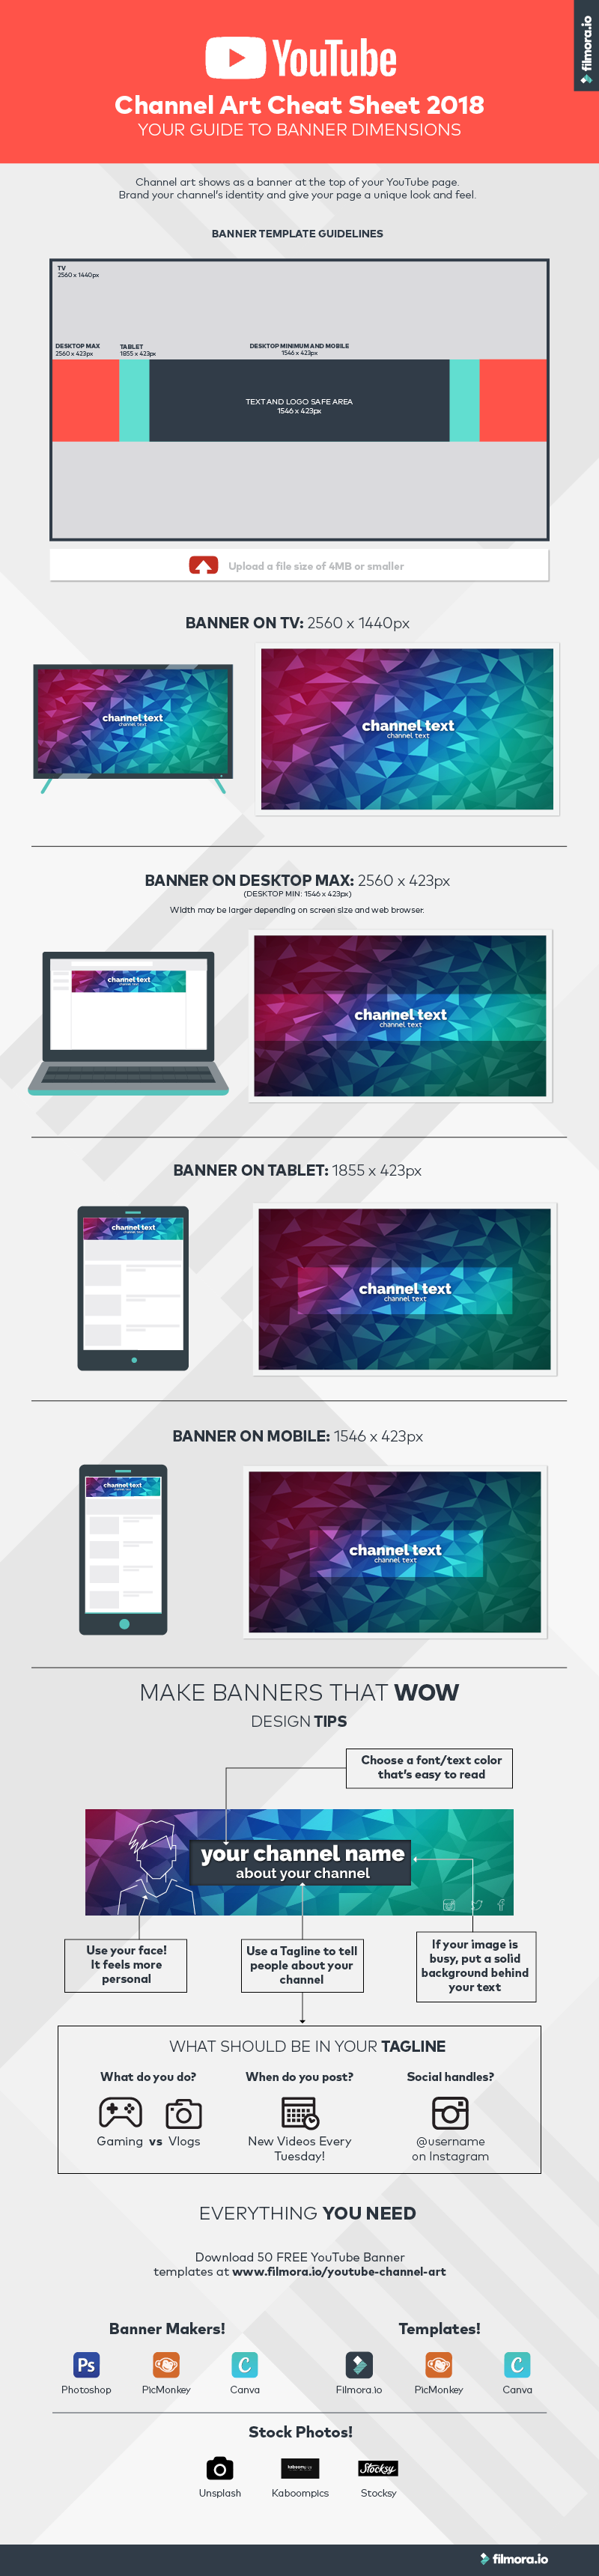 #YouTube Channel Art Cheat Sheet 2018 #Infographic